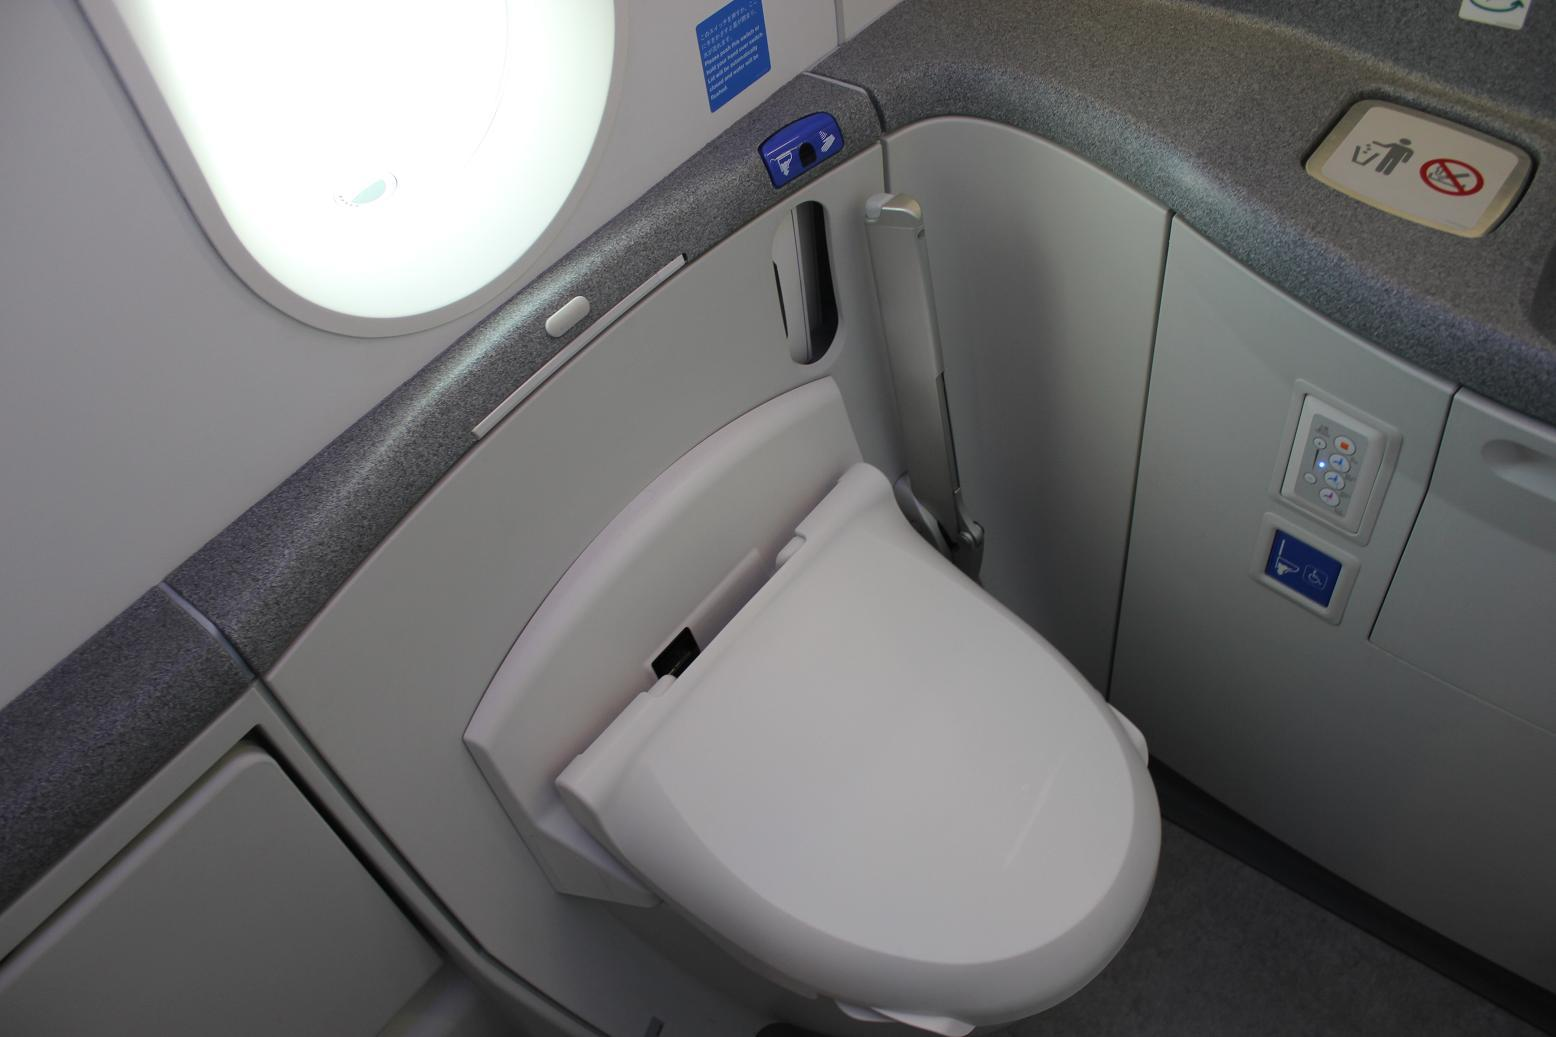 Lavatory and toilet in Japan. - blog dicethekamikaze